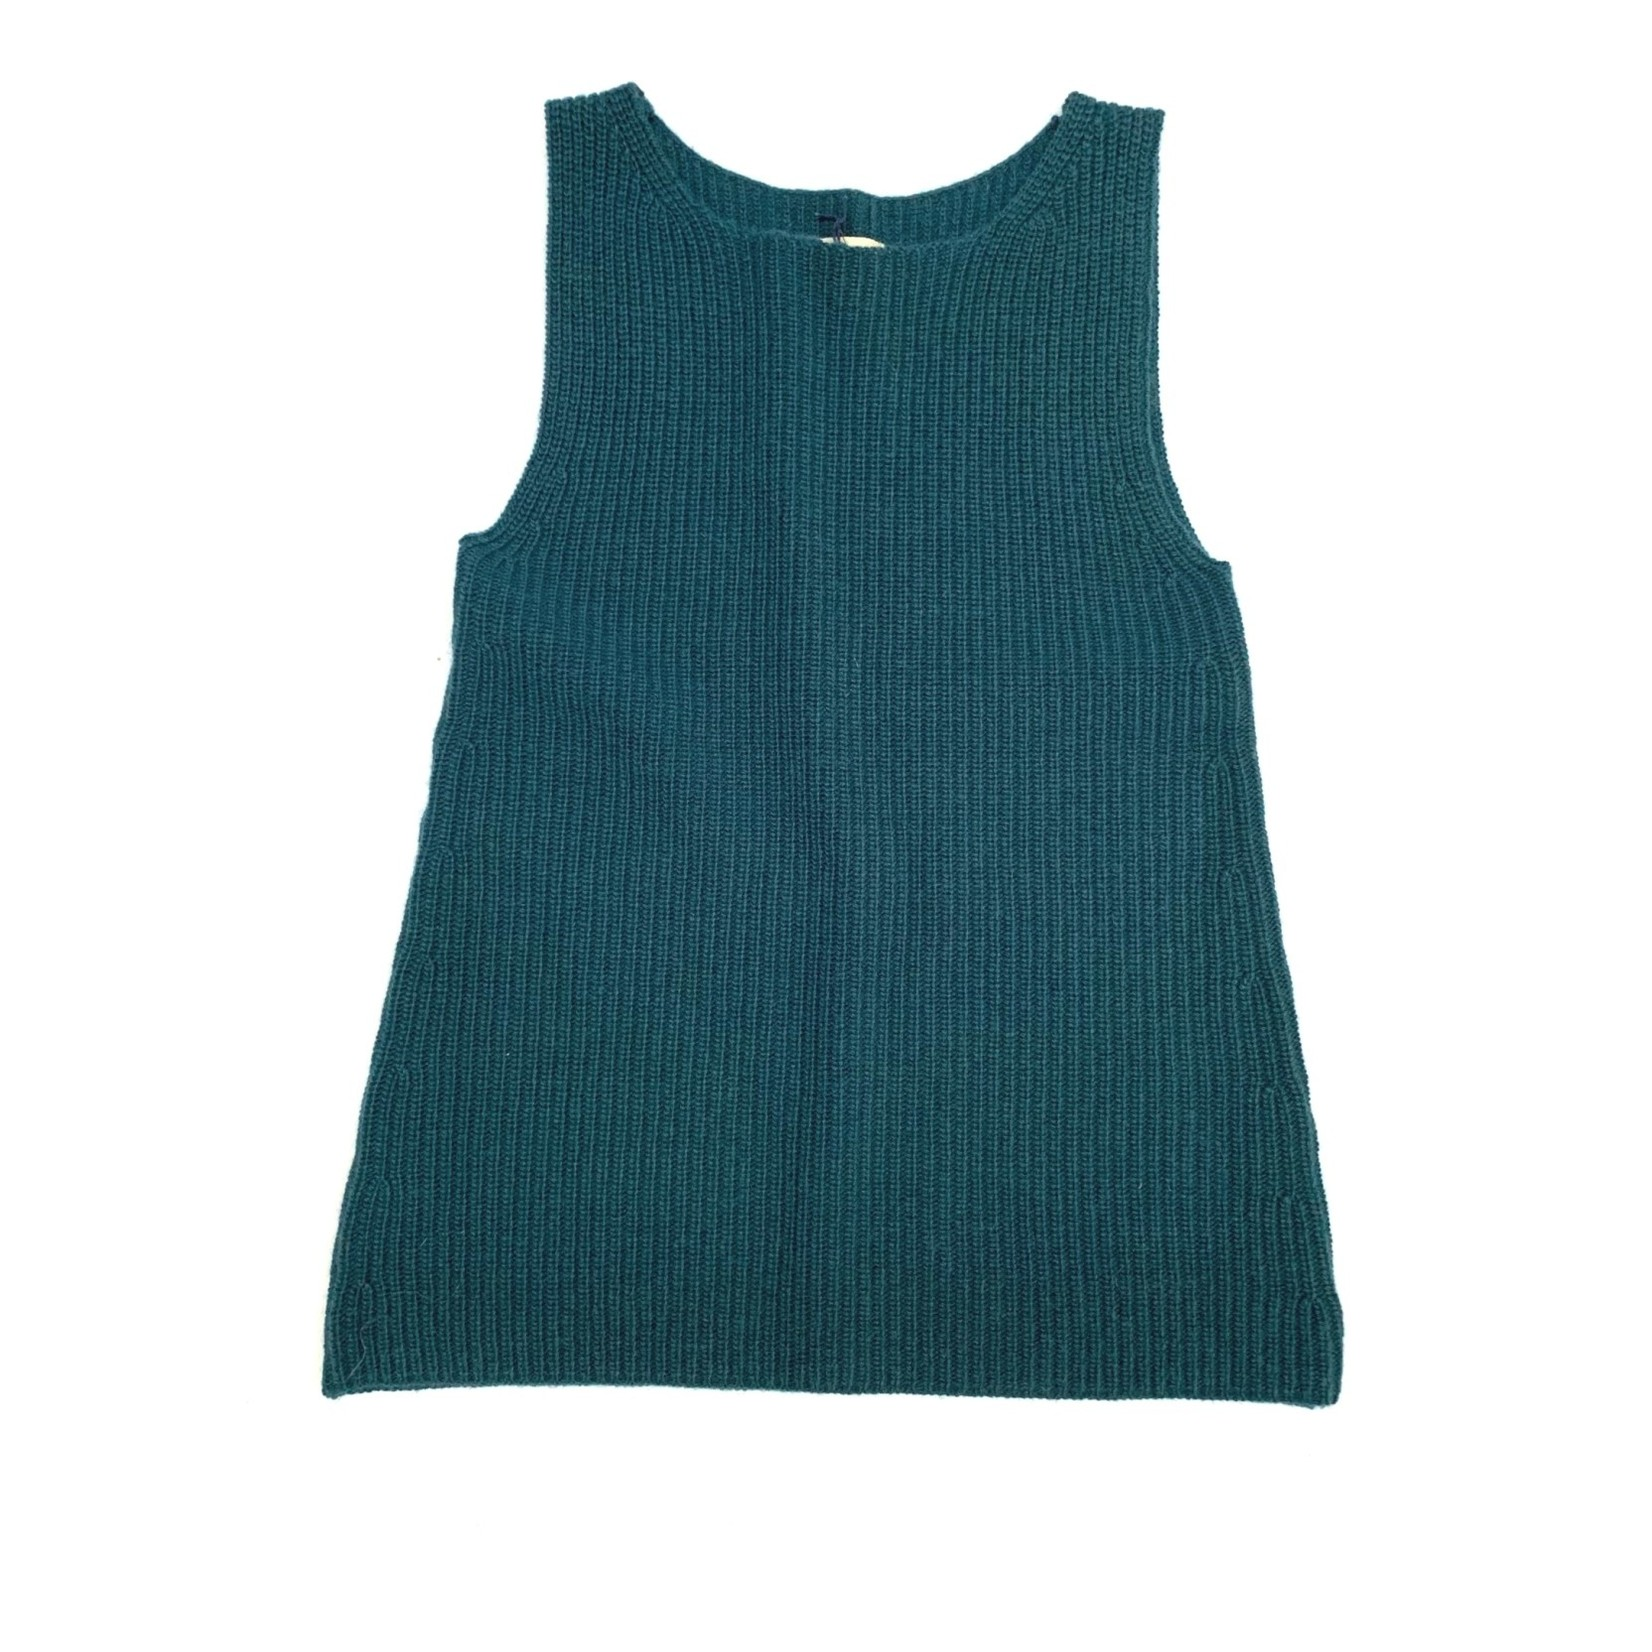 LONG LIVE THE QUEEN Long live the queen knitted dress